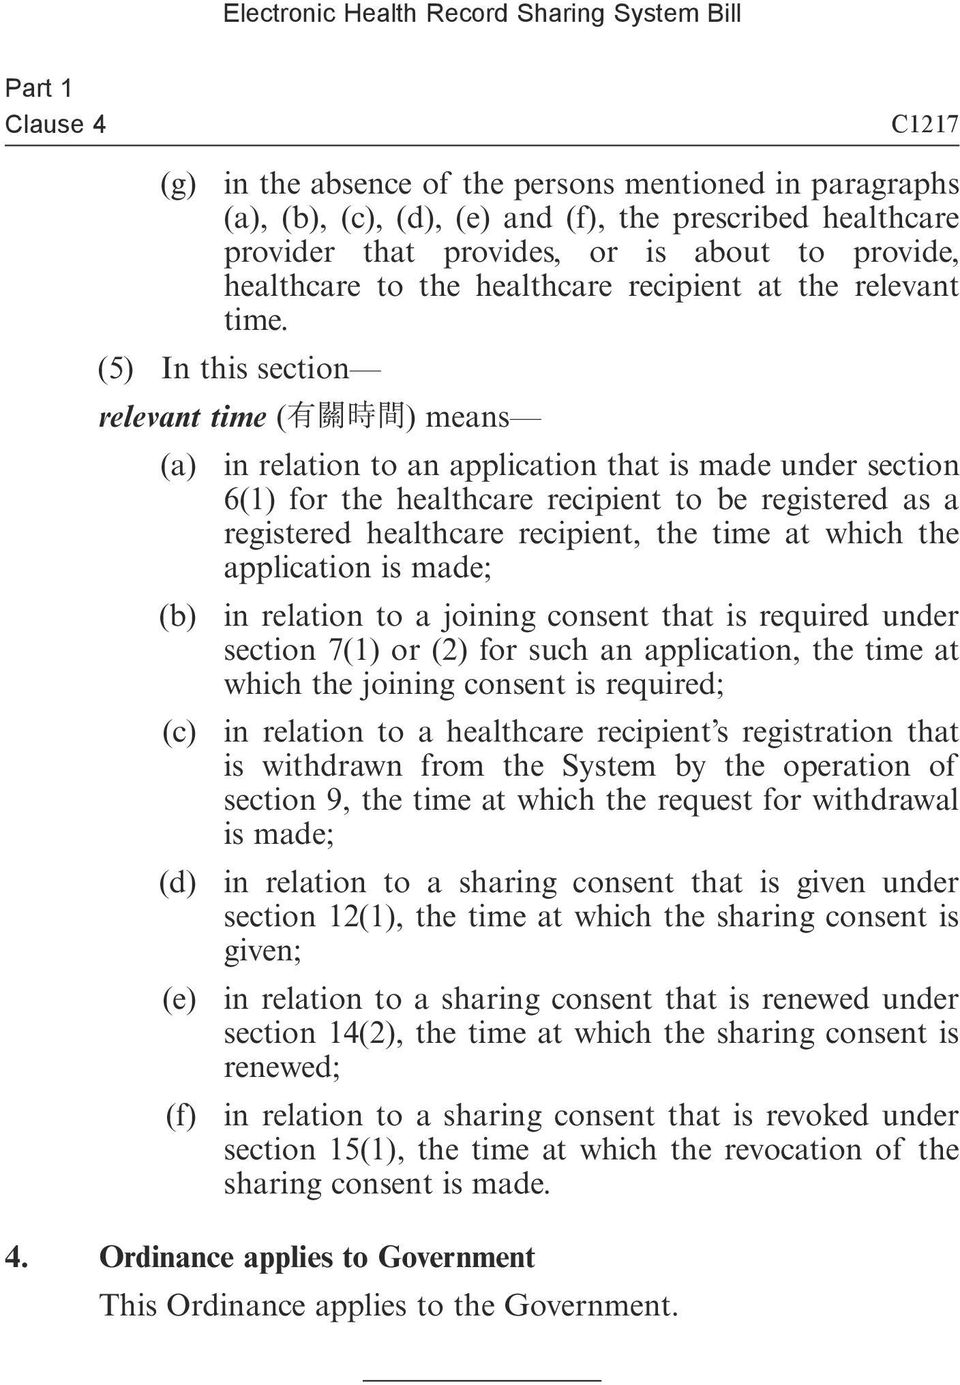 (5) In this section relevant time ( ) means (a) in relation to an application that is made under section 6(1) for the healthcare recipient to be registered as a registered healthcare recipient, the